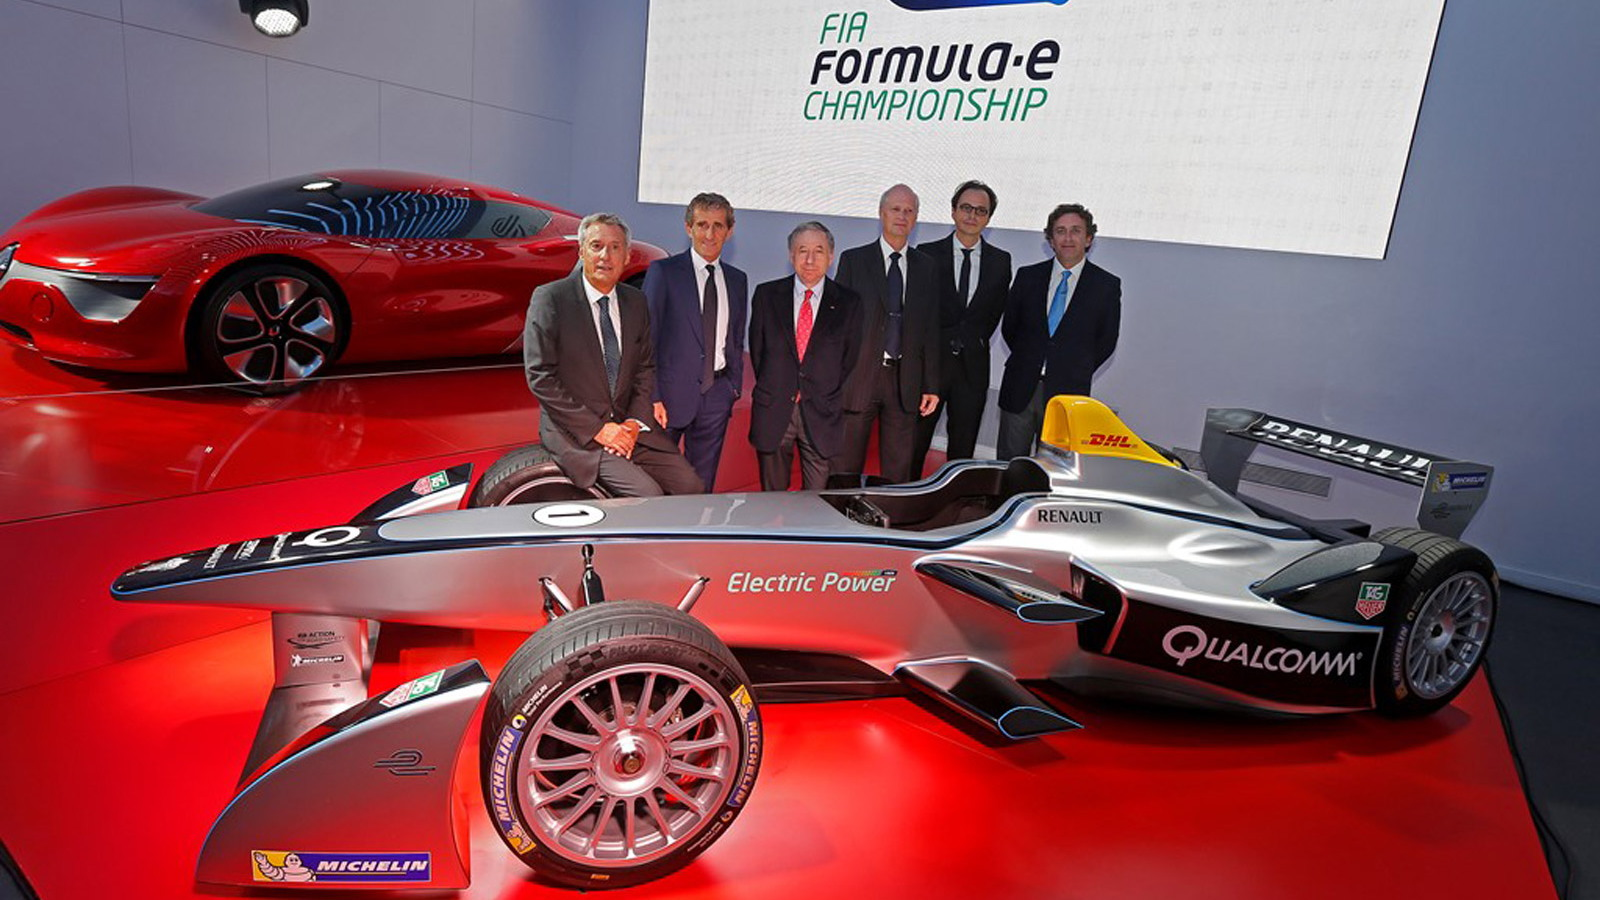 Alain Prost (second from the left) and the Spark-Renault SRT_01E